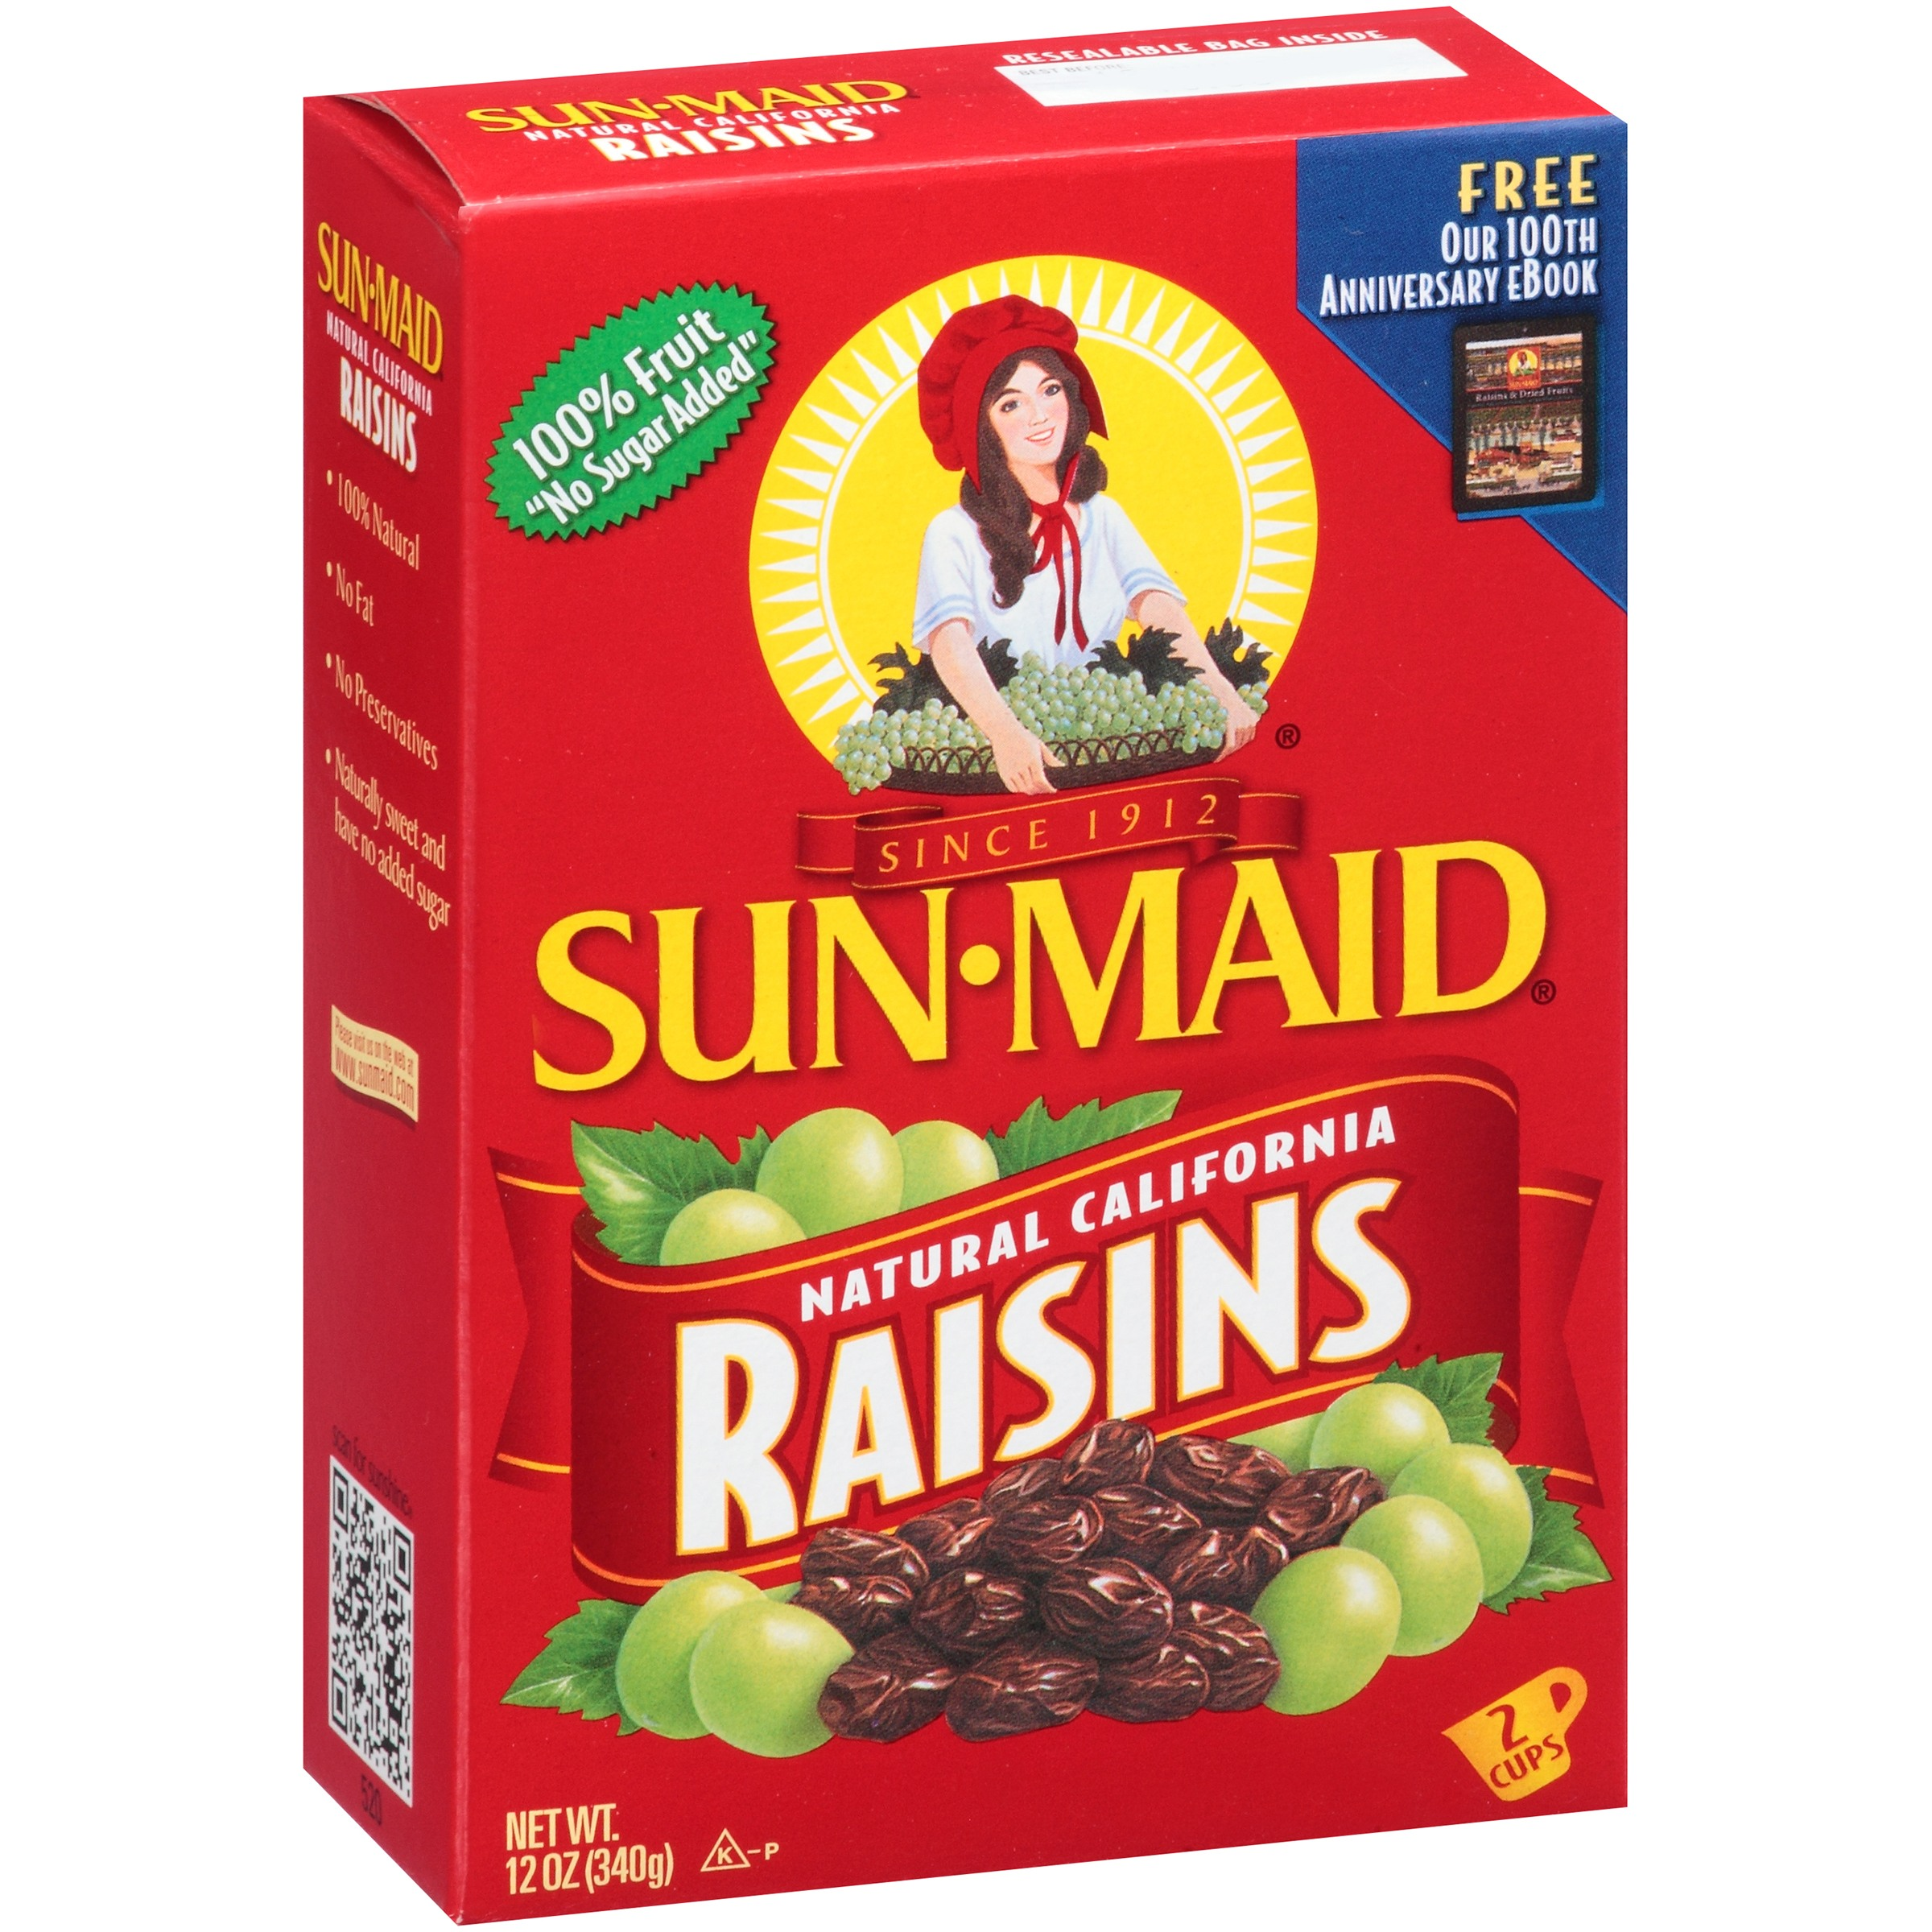 (3 Pack) Sun-Maid California Raisins, 12 Oz